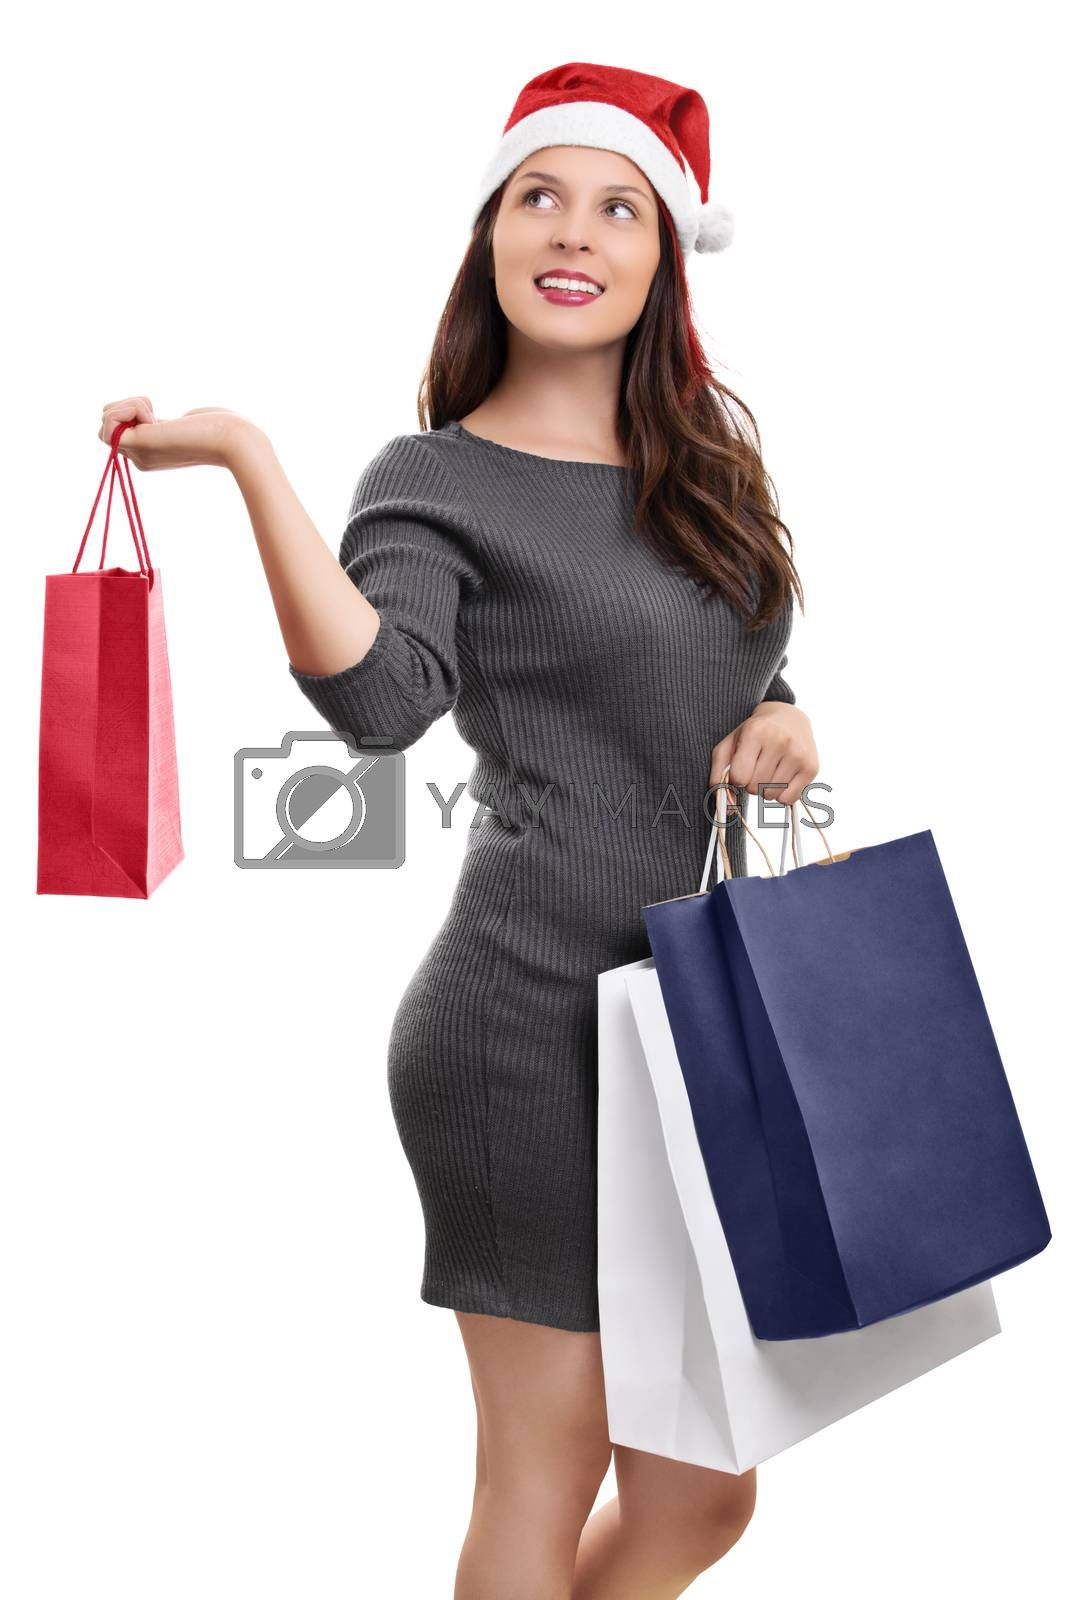 A portrait of a beautiful smiling young girl in winter clothes wearing santa's hat, holding shopping bags, isolated on white background.